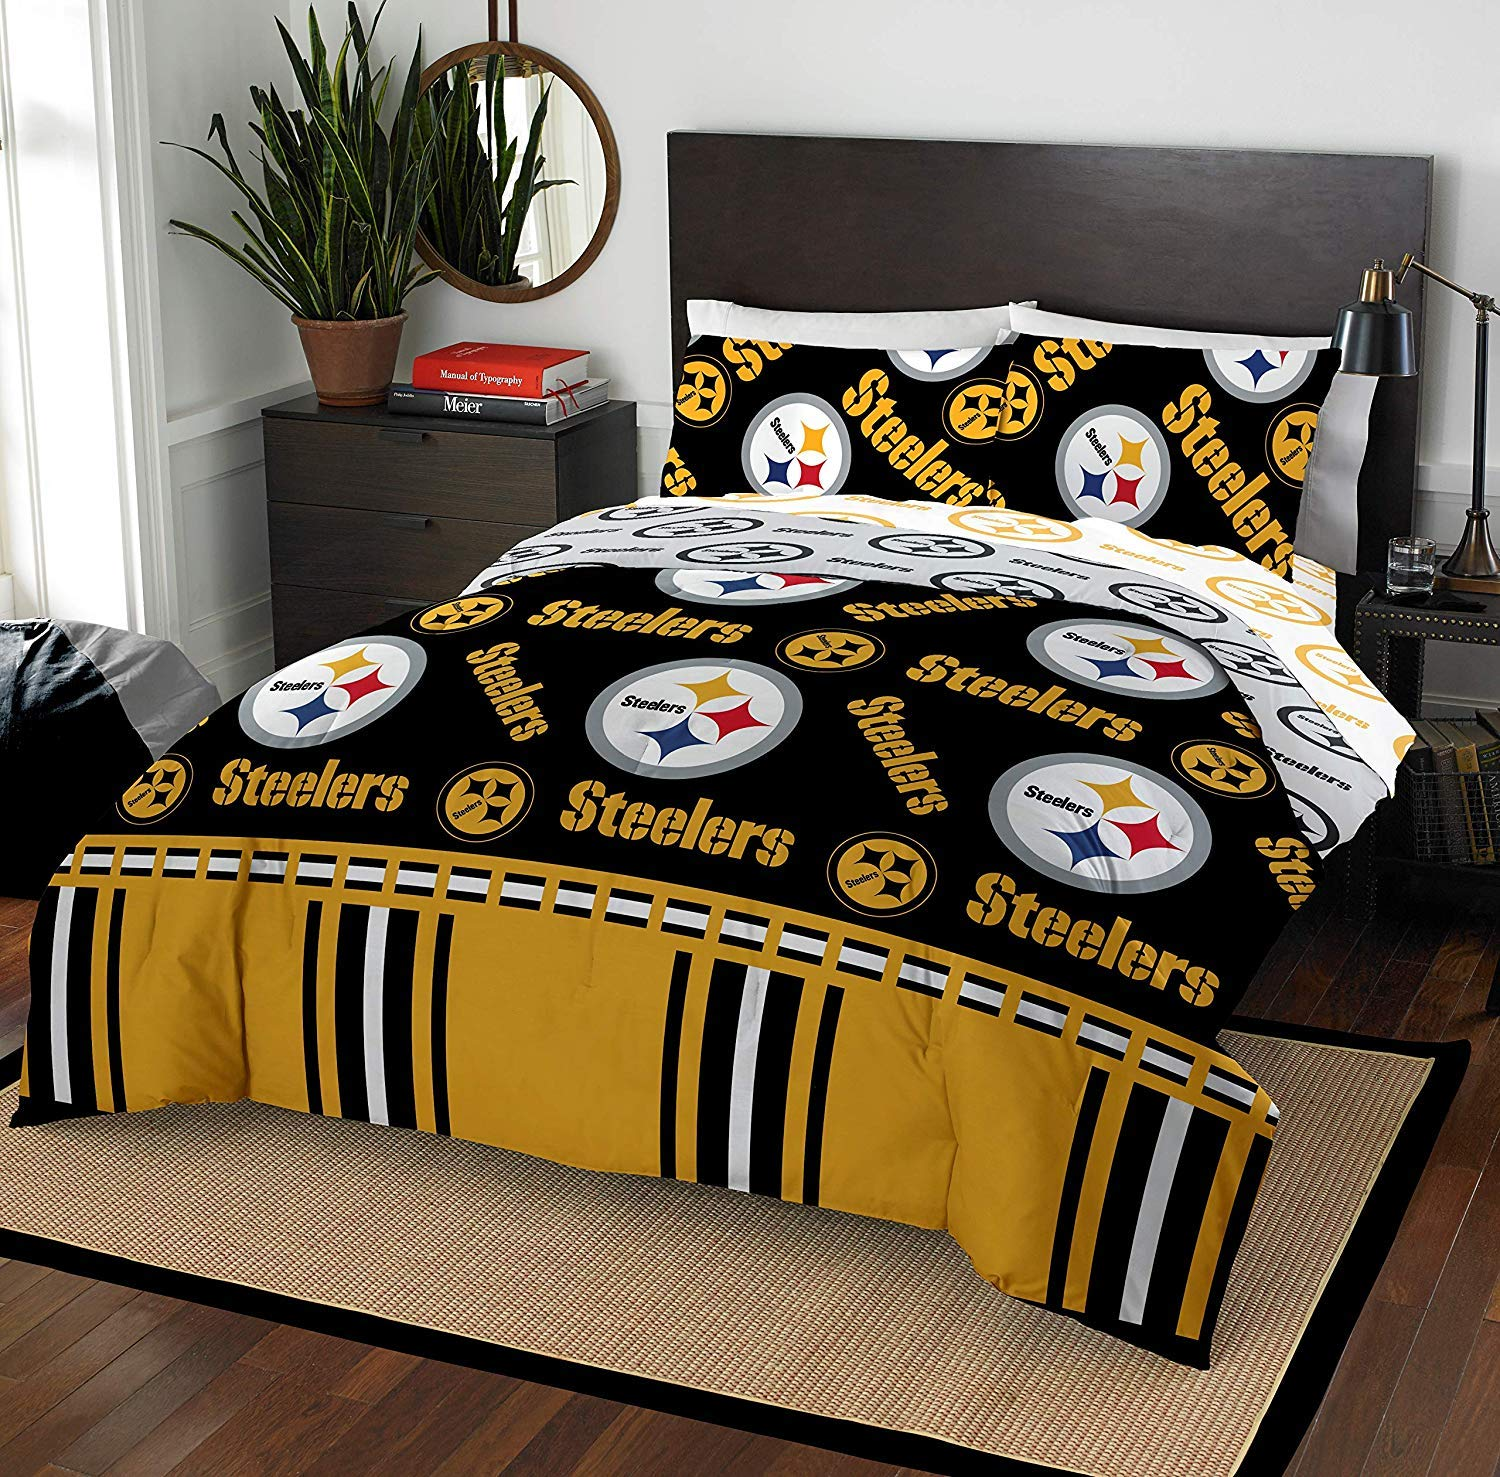 The Northwest Company NFL Pittsburgh Steelers Queen Bed in a Bag Complete Bedding Set #270259180